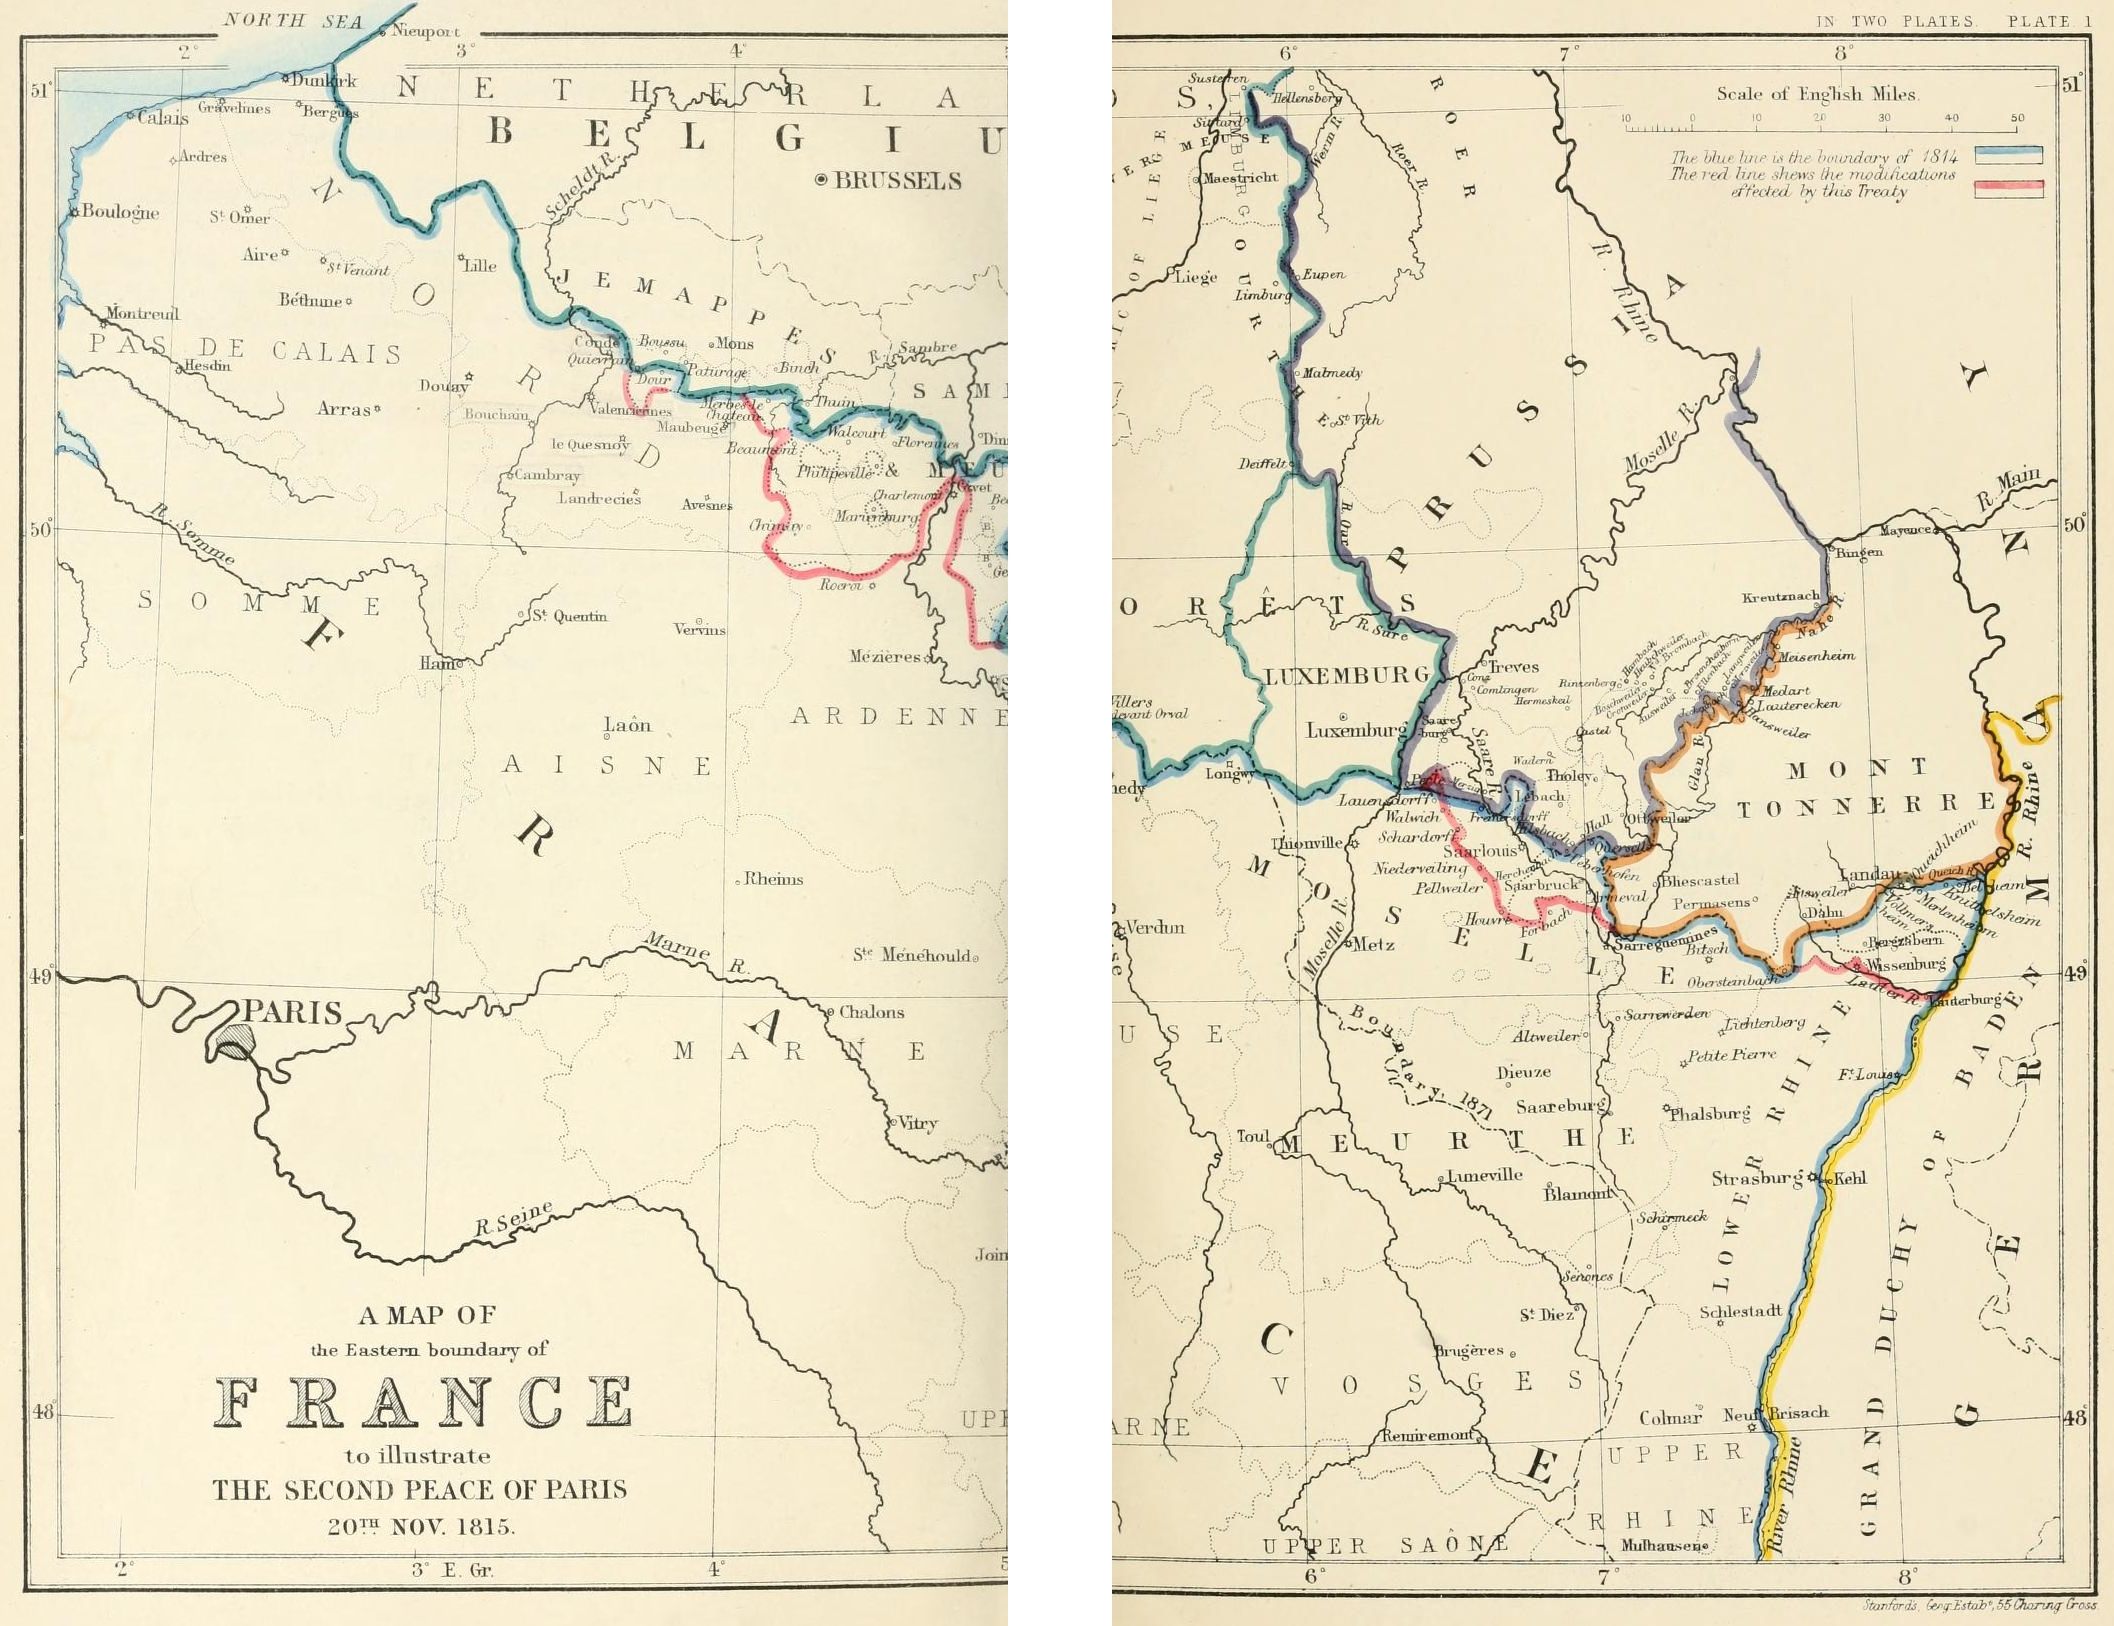 File A Map Of The Eastern Boundary Of France To Illustrate The